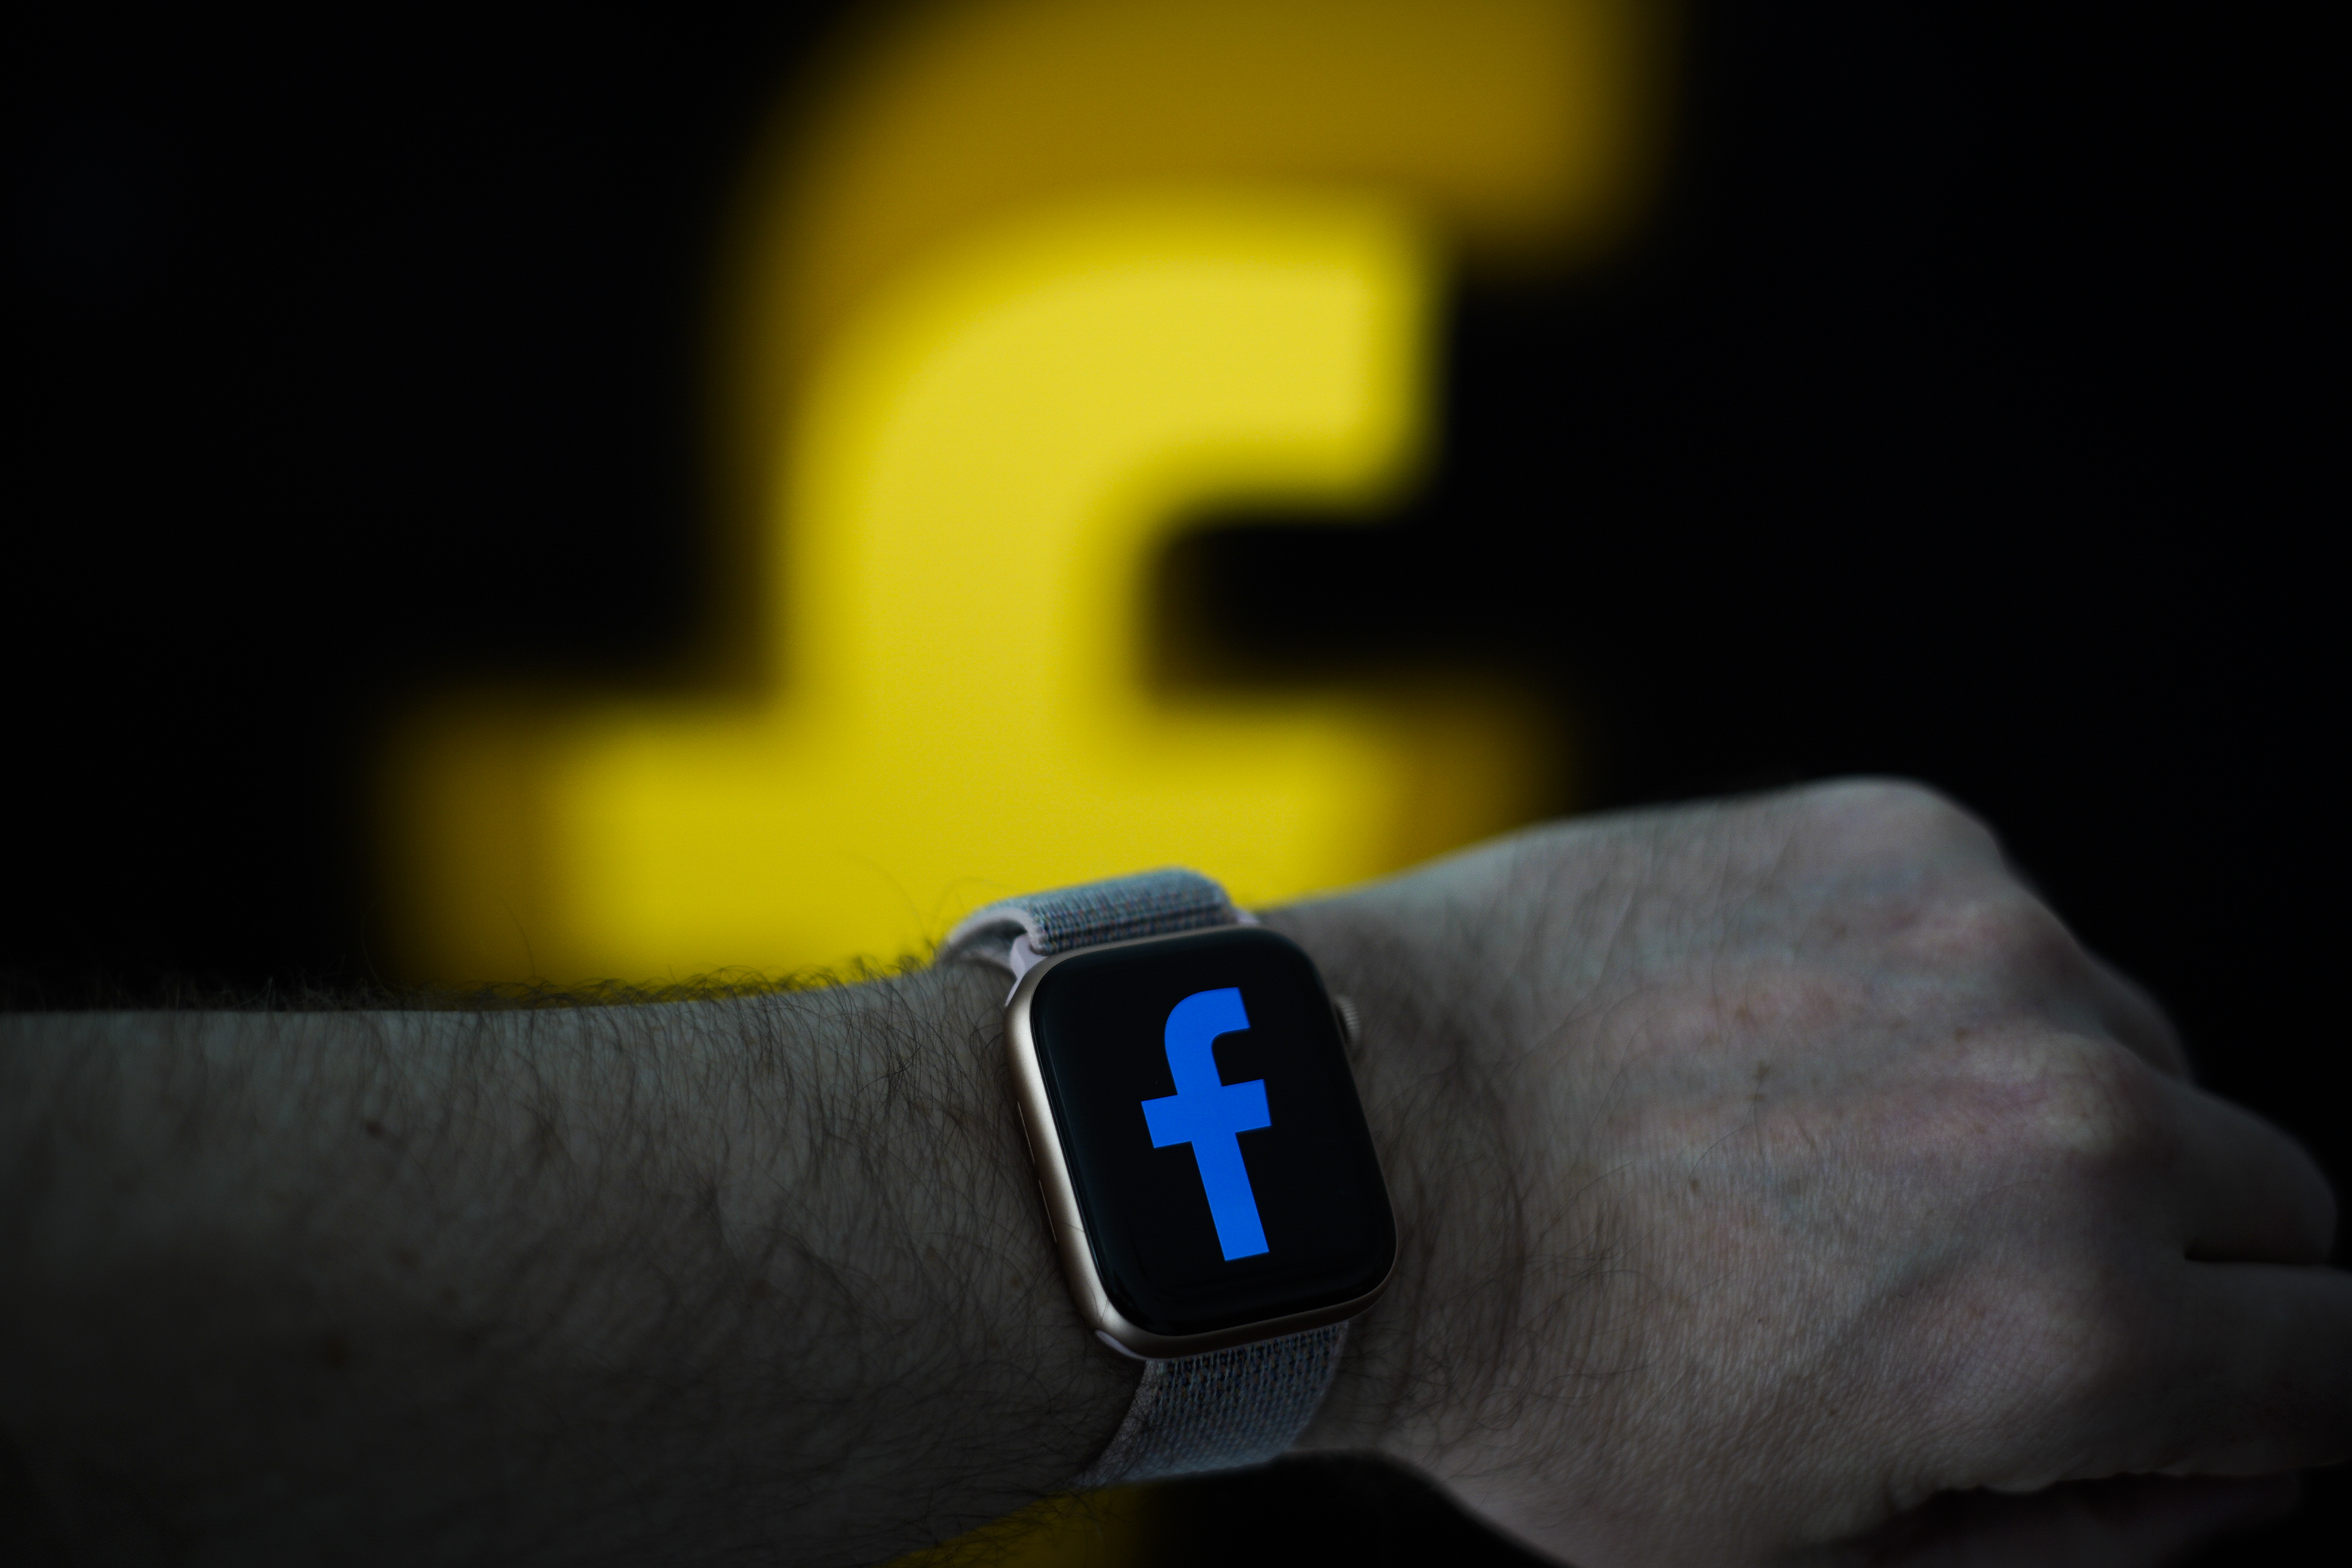 Facebook's first smartwatch will reportedly have a detachable camera